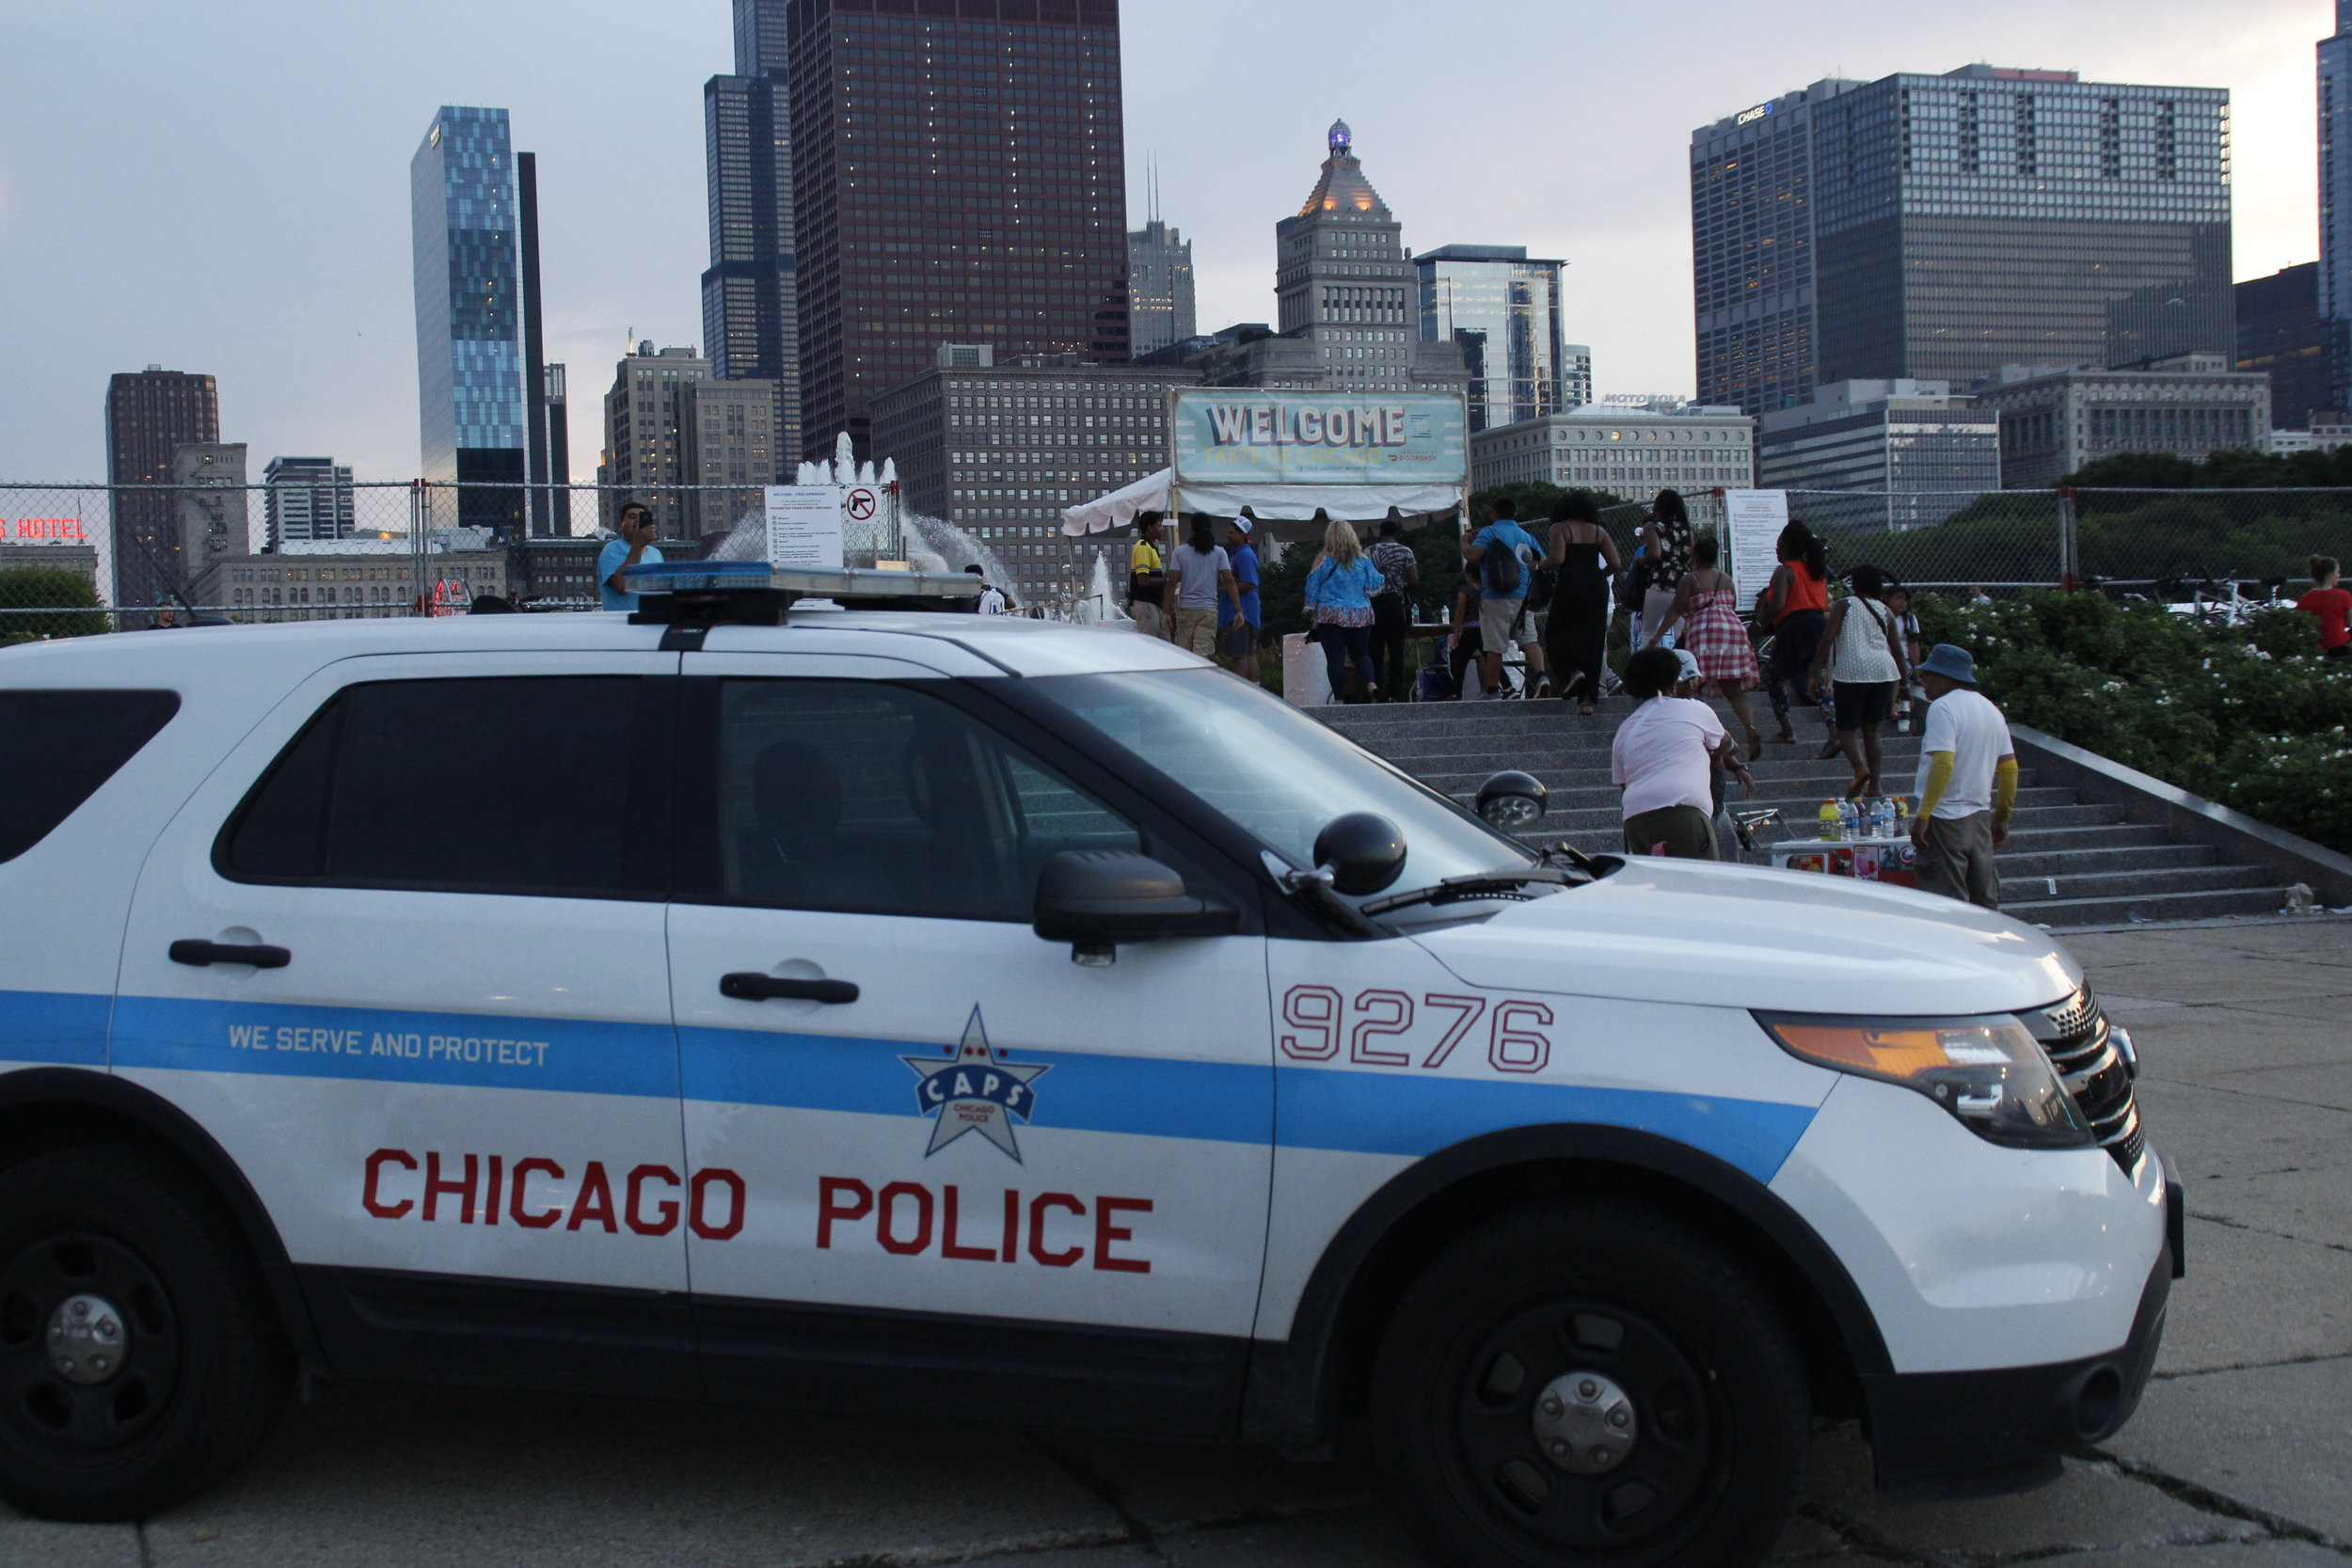 As people came and went to the 2019 Taste of Chicago, Chicago Police Department was posted outside each entrance and exit of the event. Over 100 officers were sent daily from all over the city to provide security for the Taste.